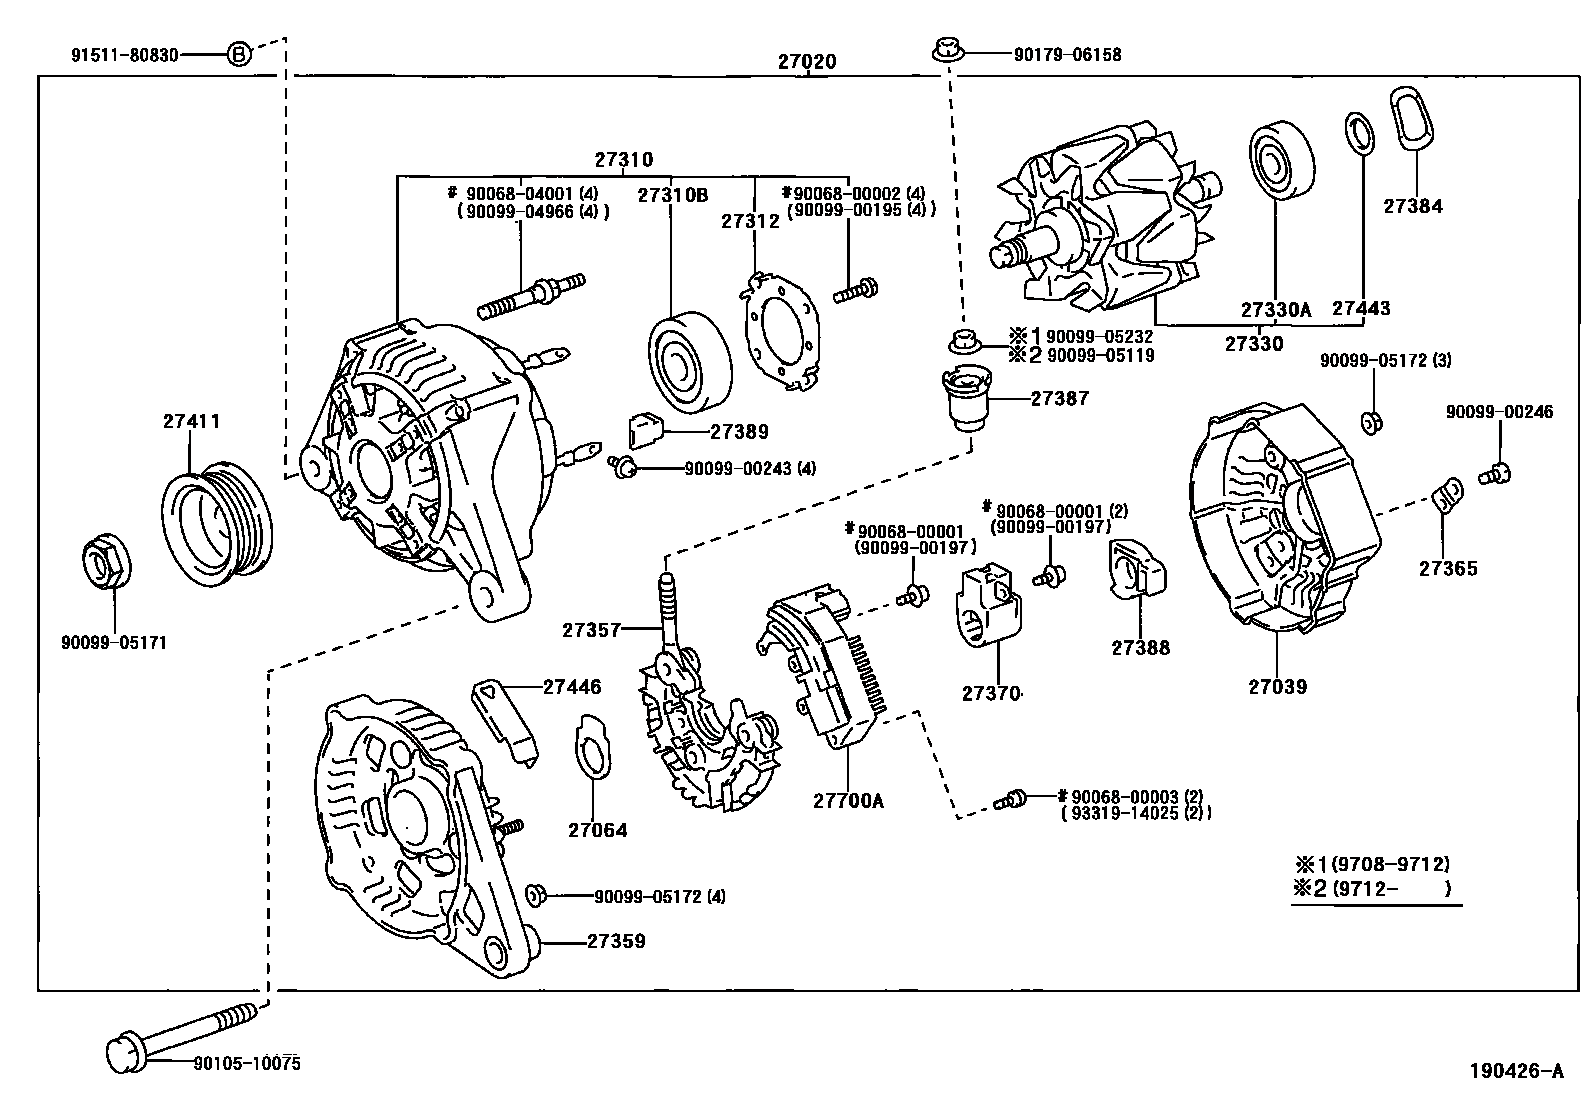 2006 Toyota Corolla Alternator Wiring Diagram Manual Guide